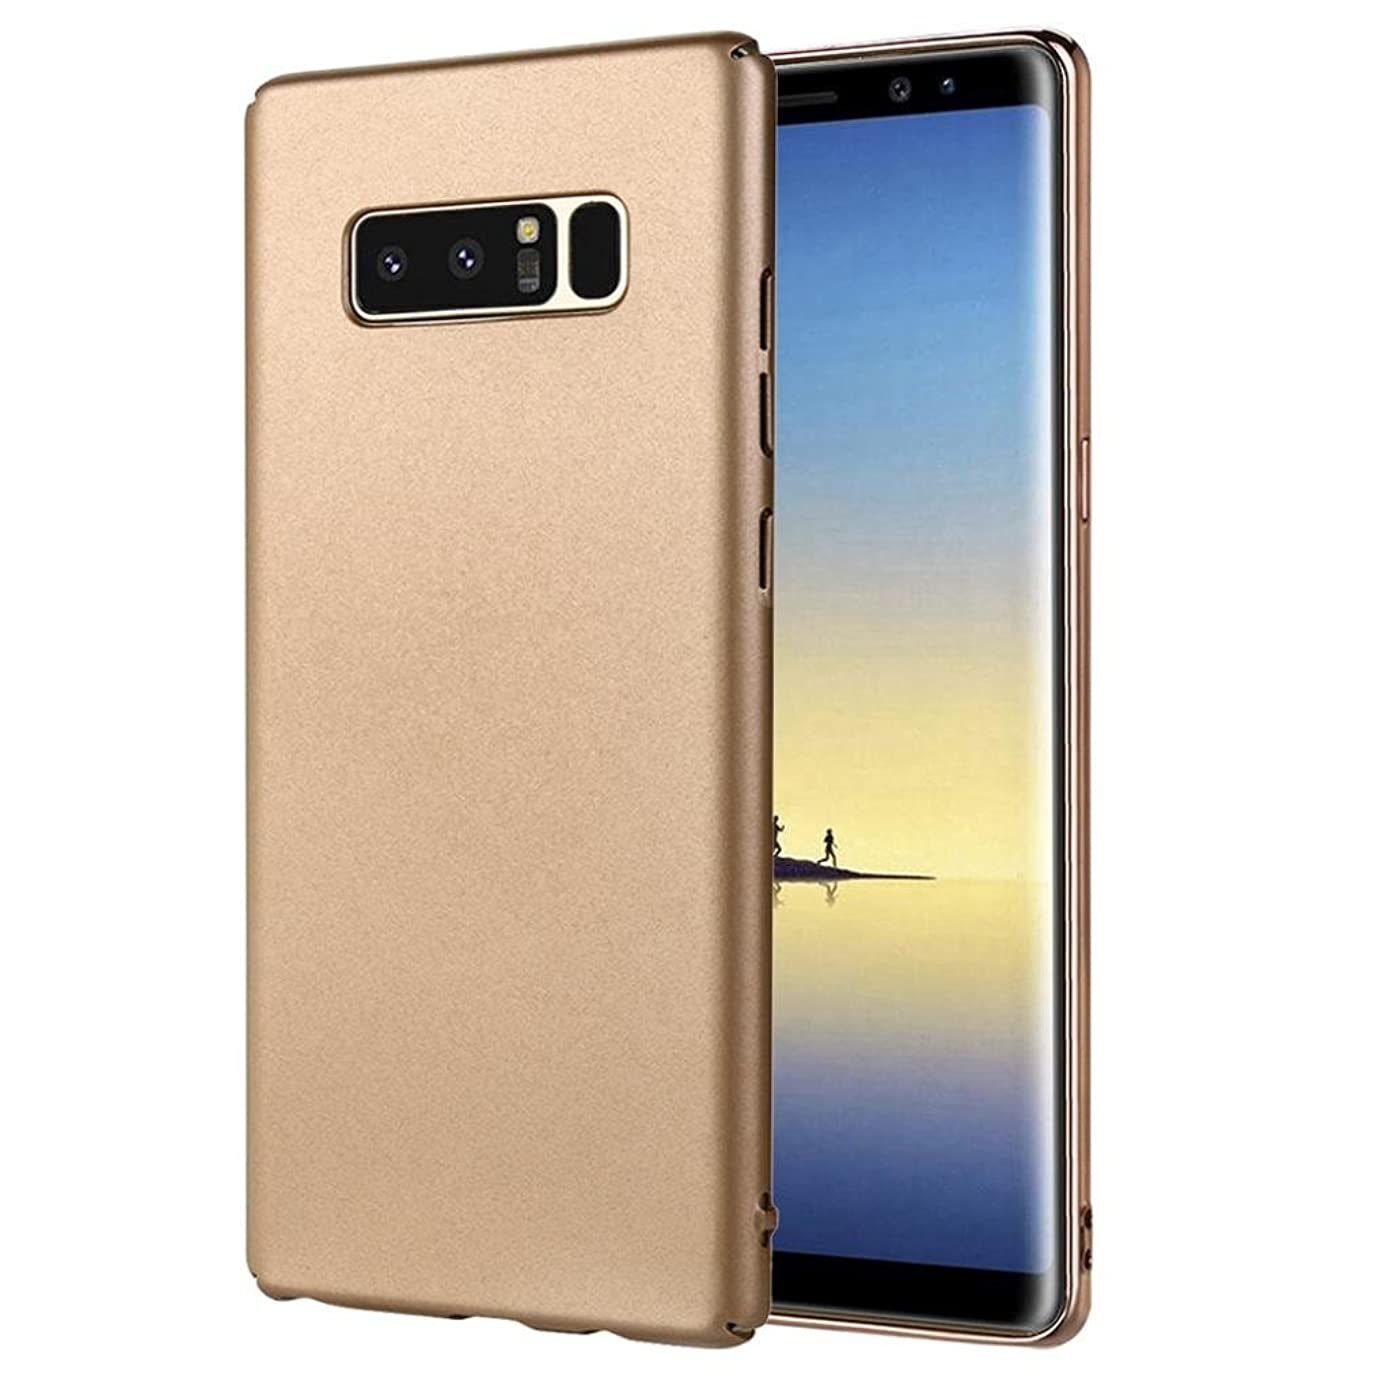 Iusun Ultra Thin Hard PC Case Shockproof Back Cover For Samsung Galaxy Note 8